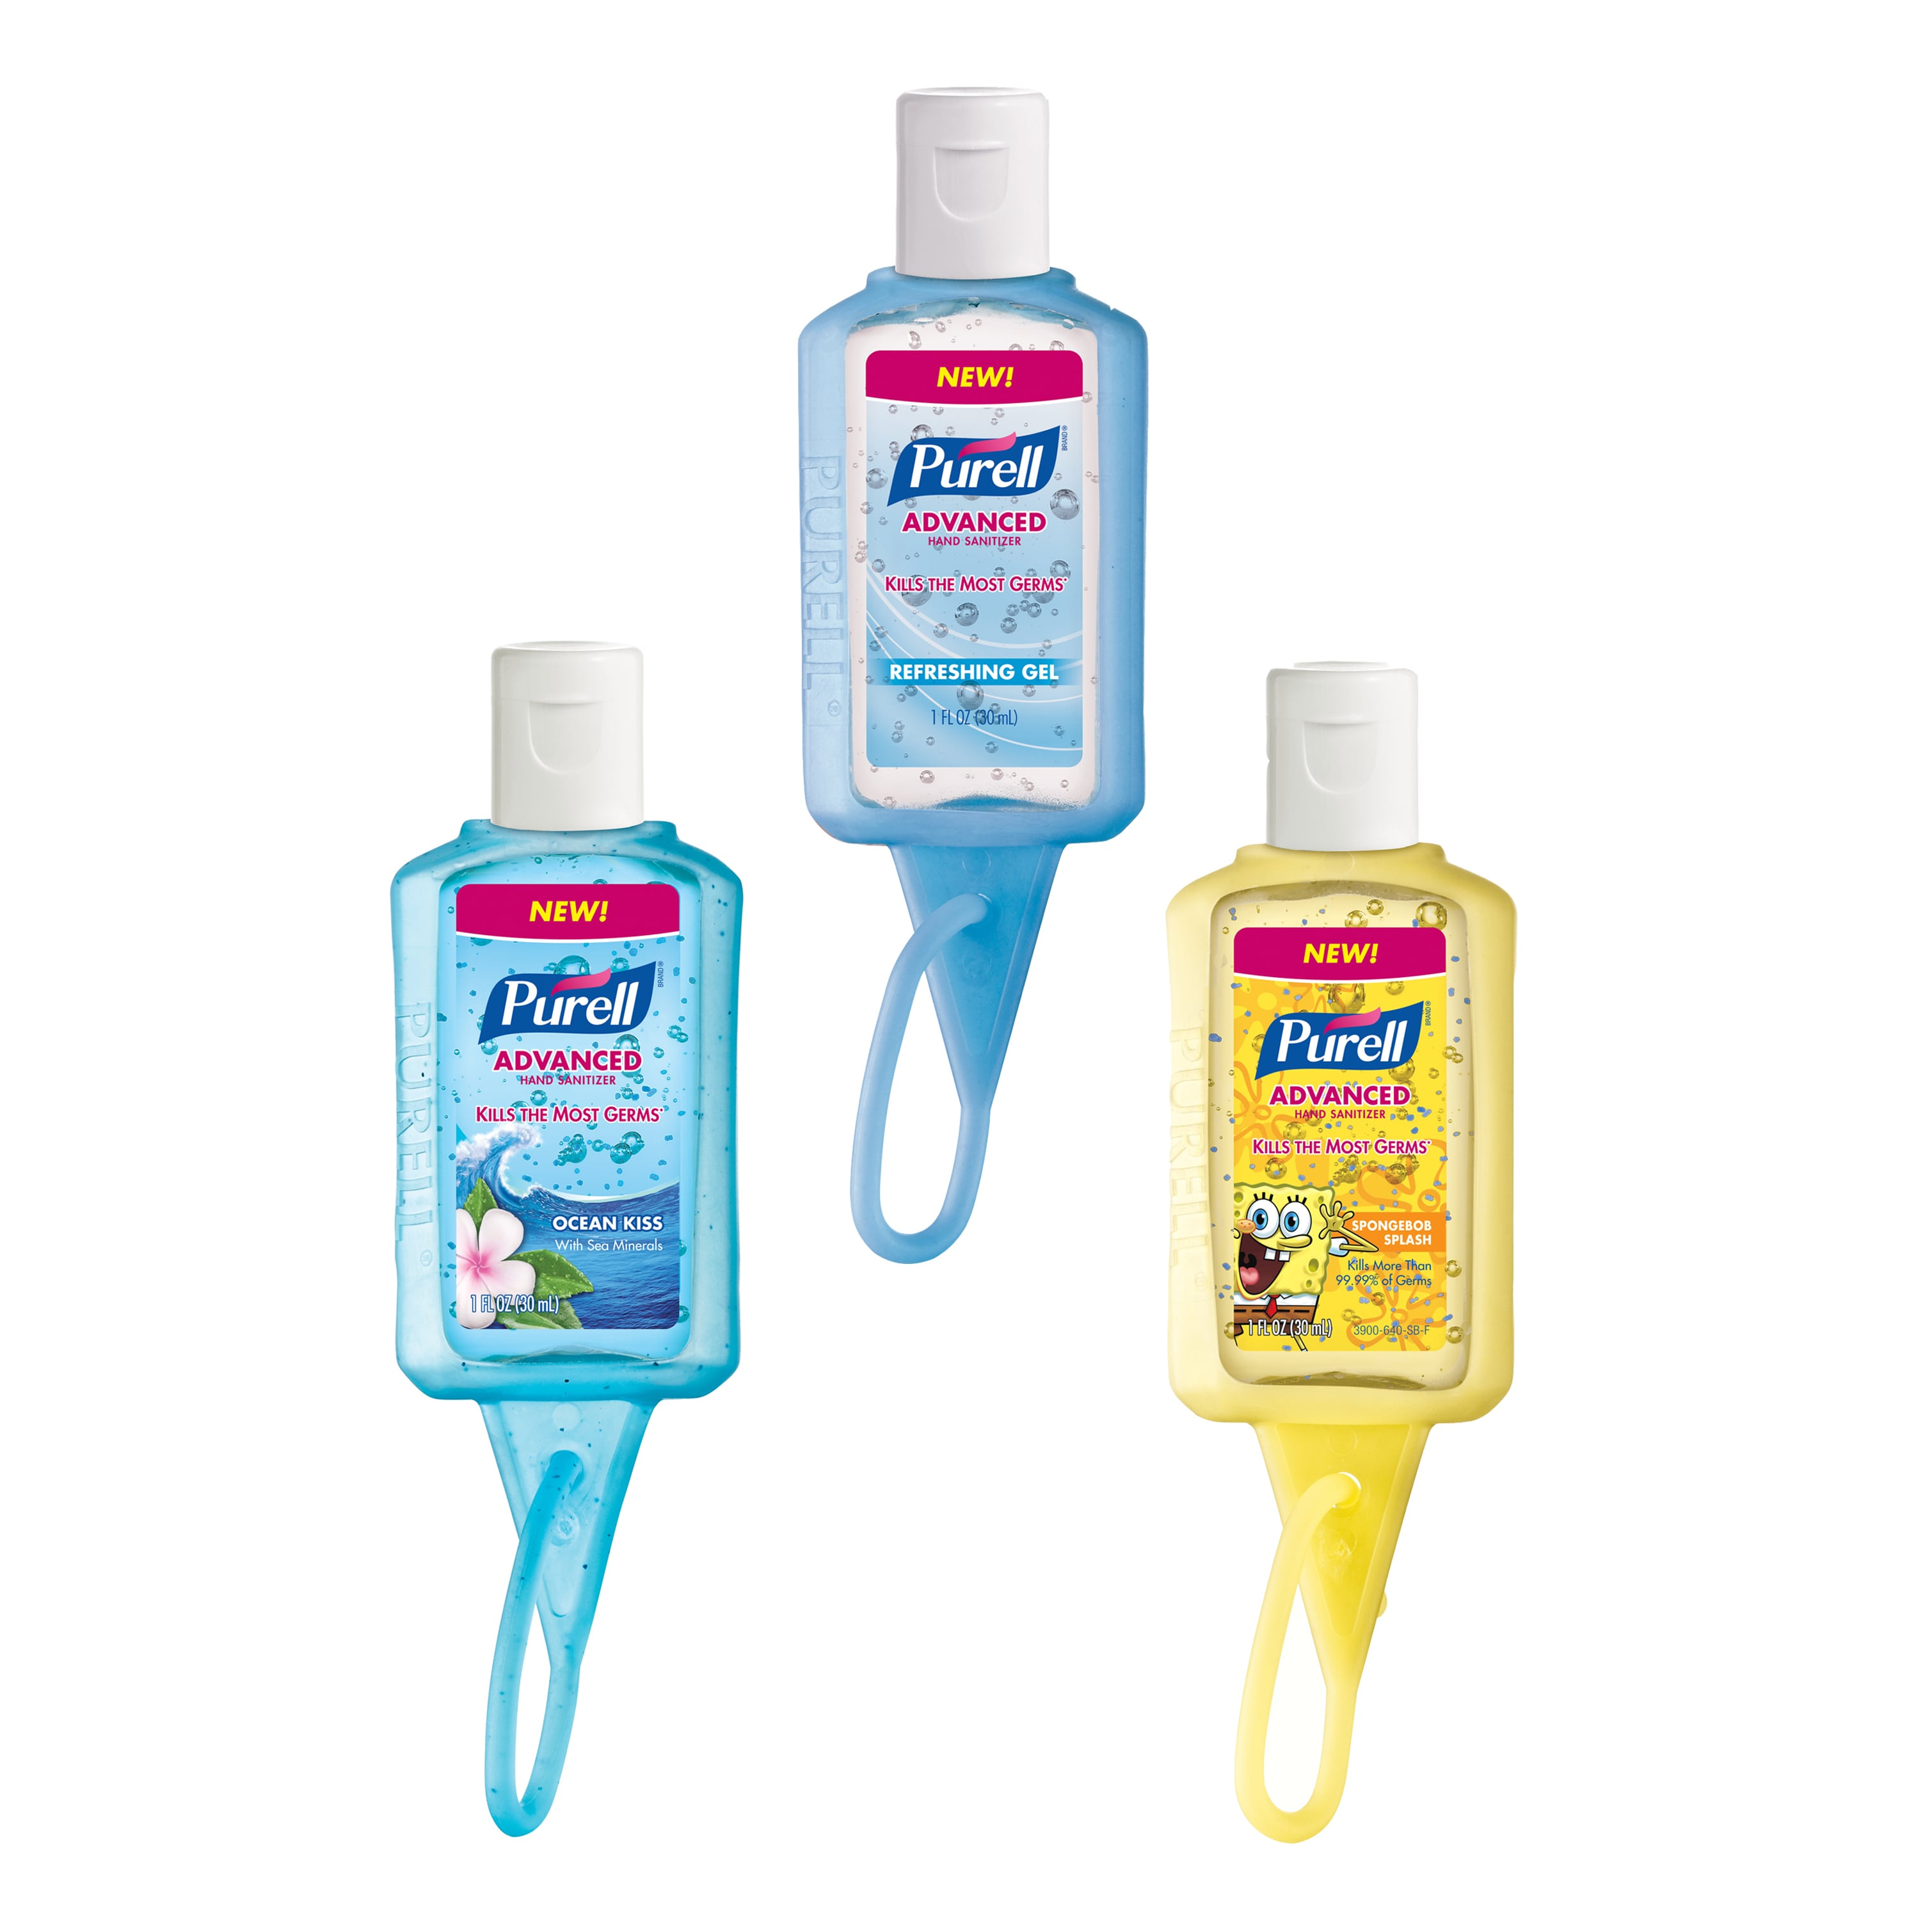 PURELL Advanced, 1 oz (Pack of 36)